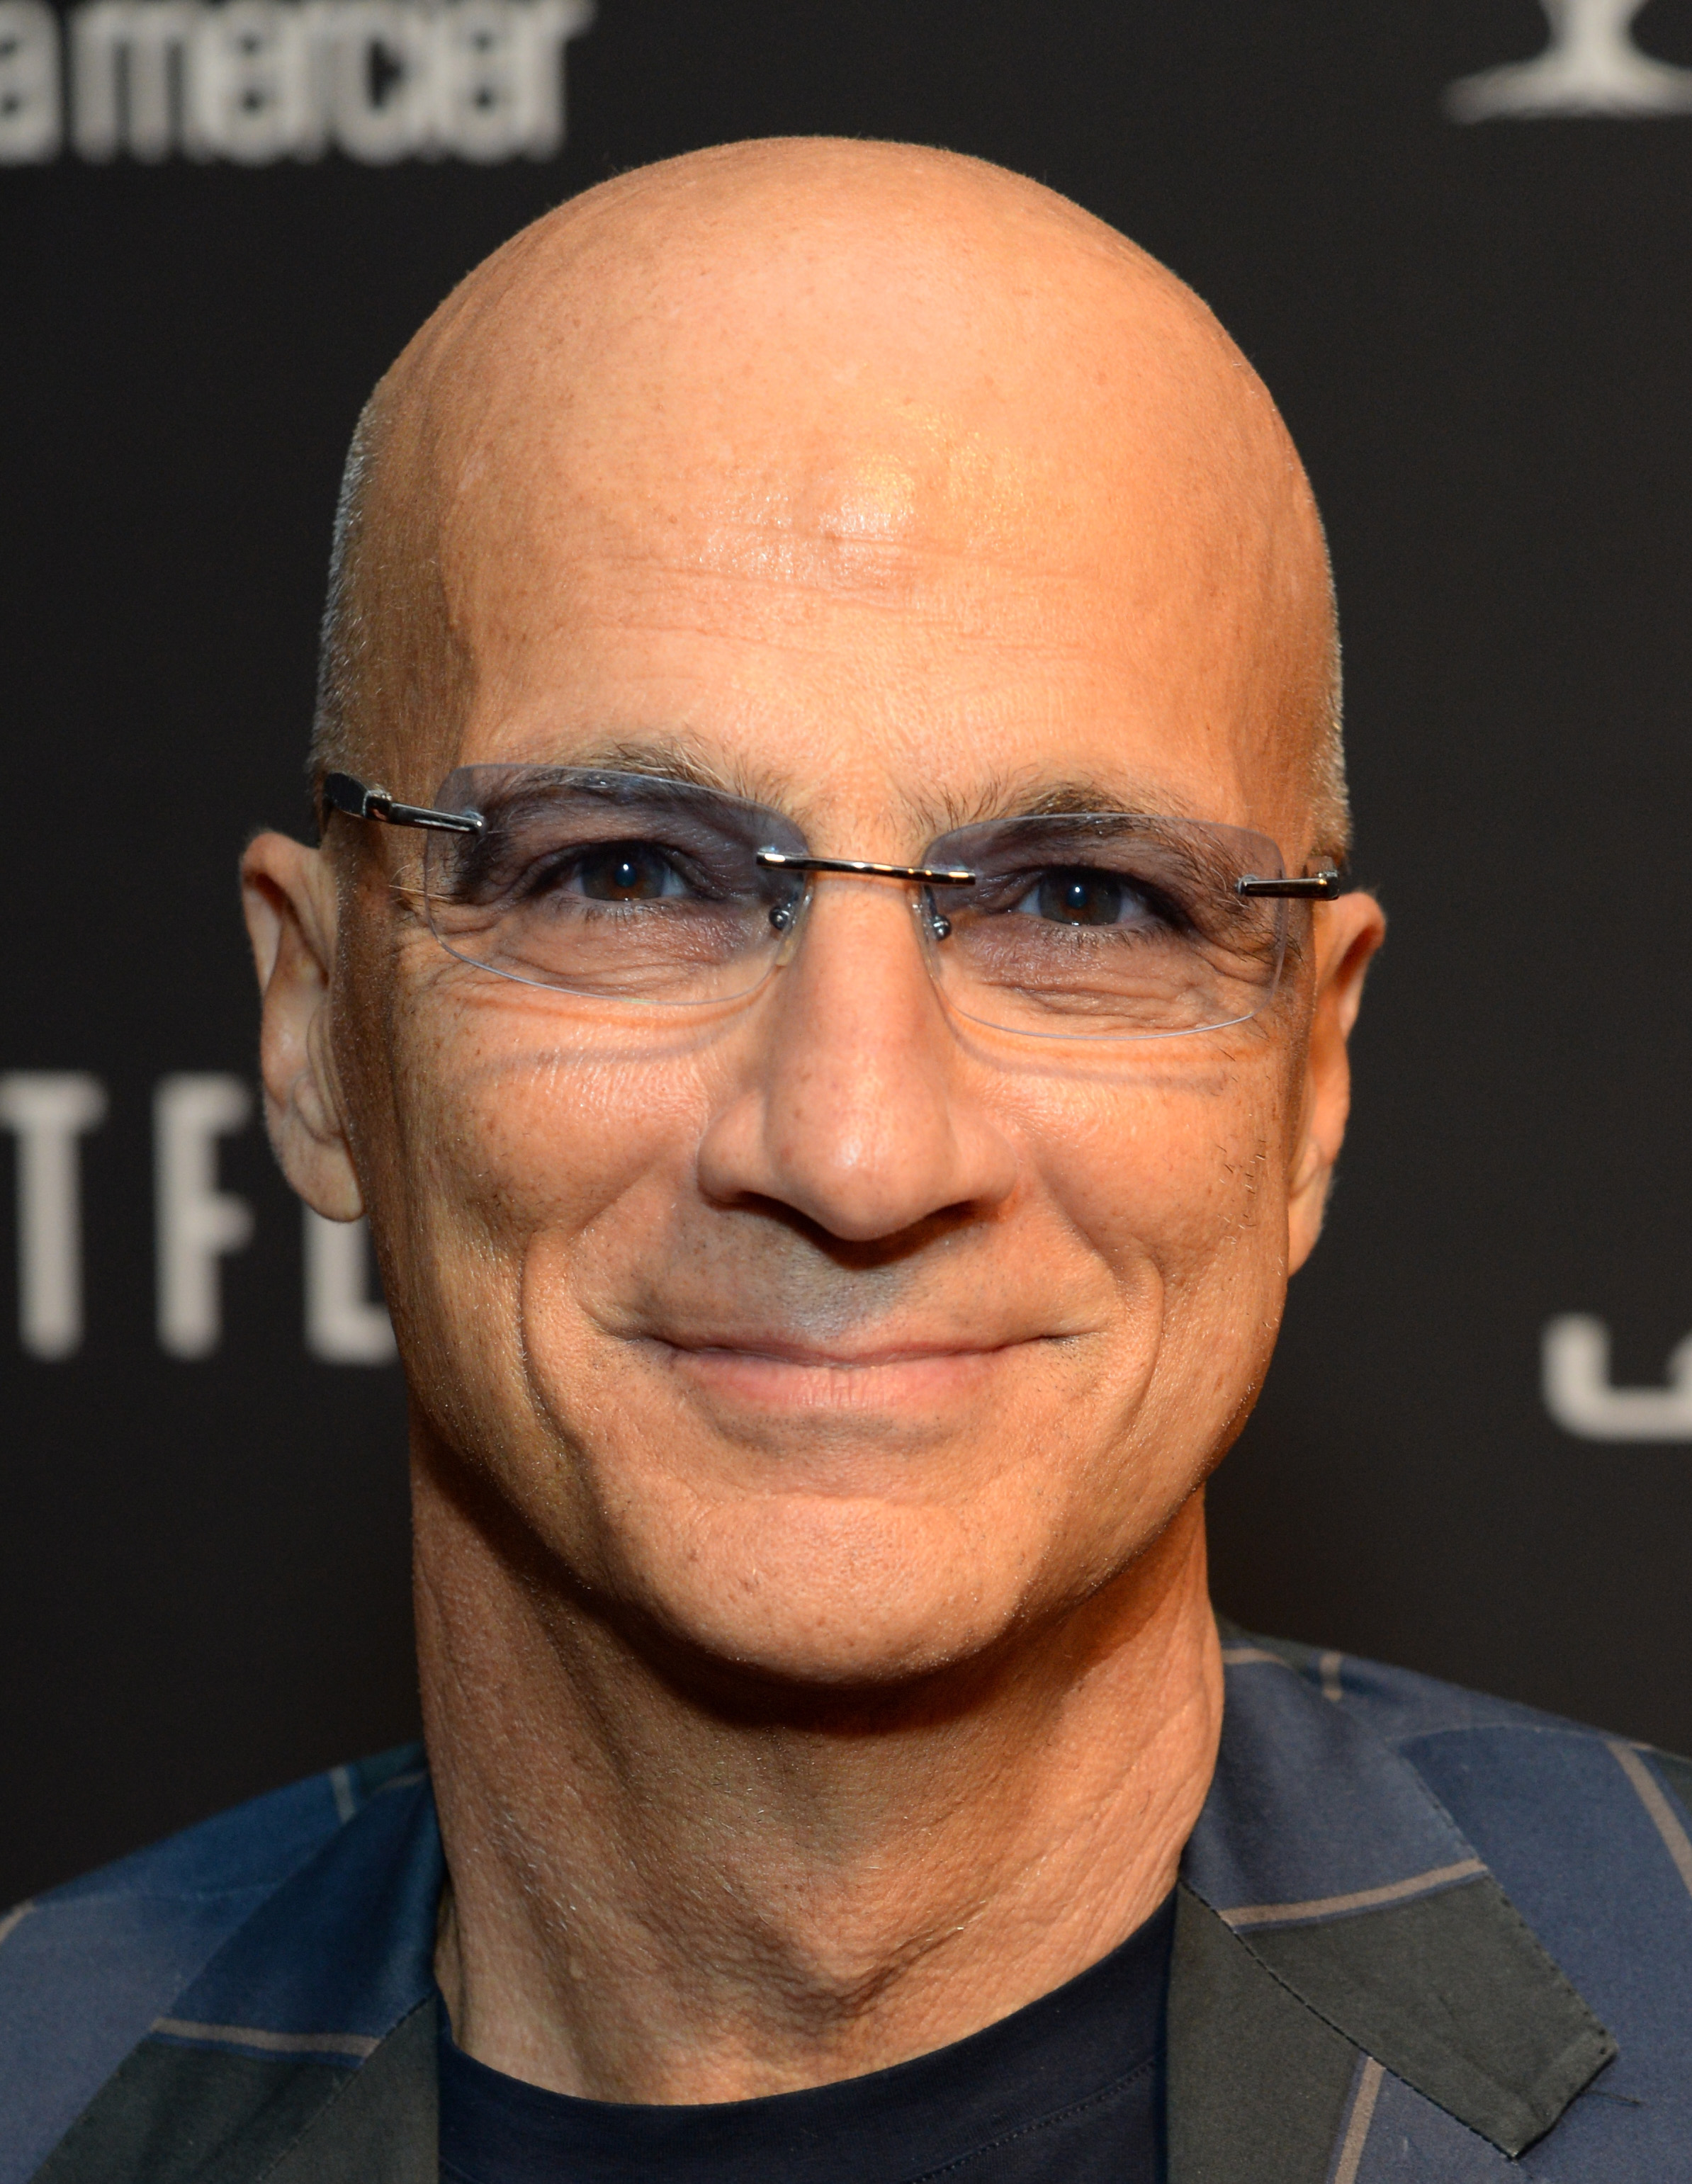 Producer Jimmy Iovine attends Moet & Chandon at The Weinstein Company's 2014 Golden Globe Awards after party